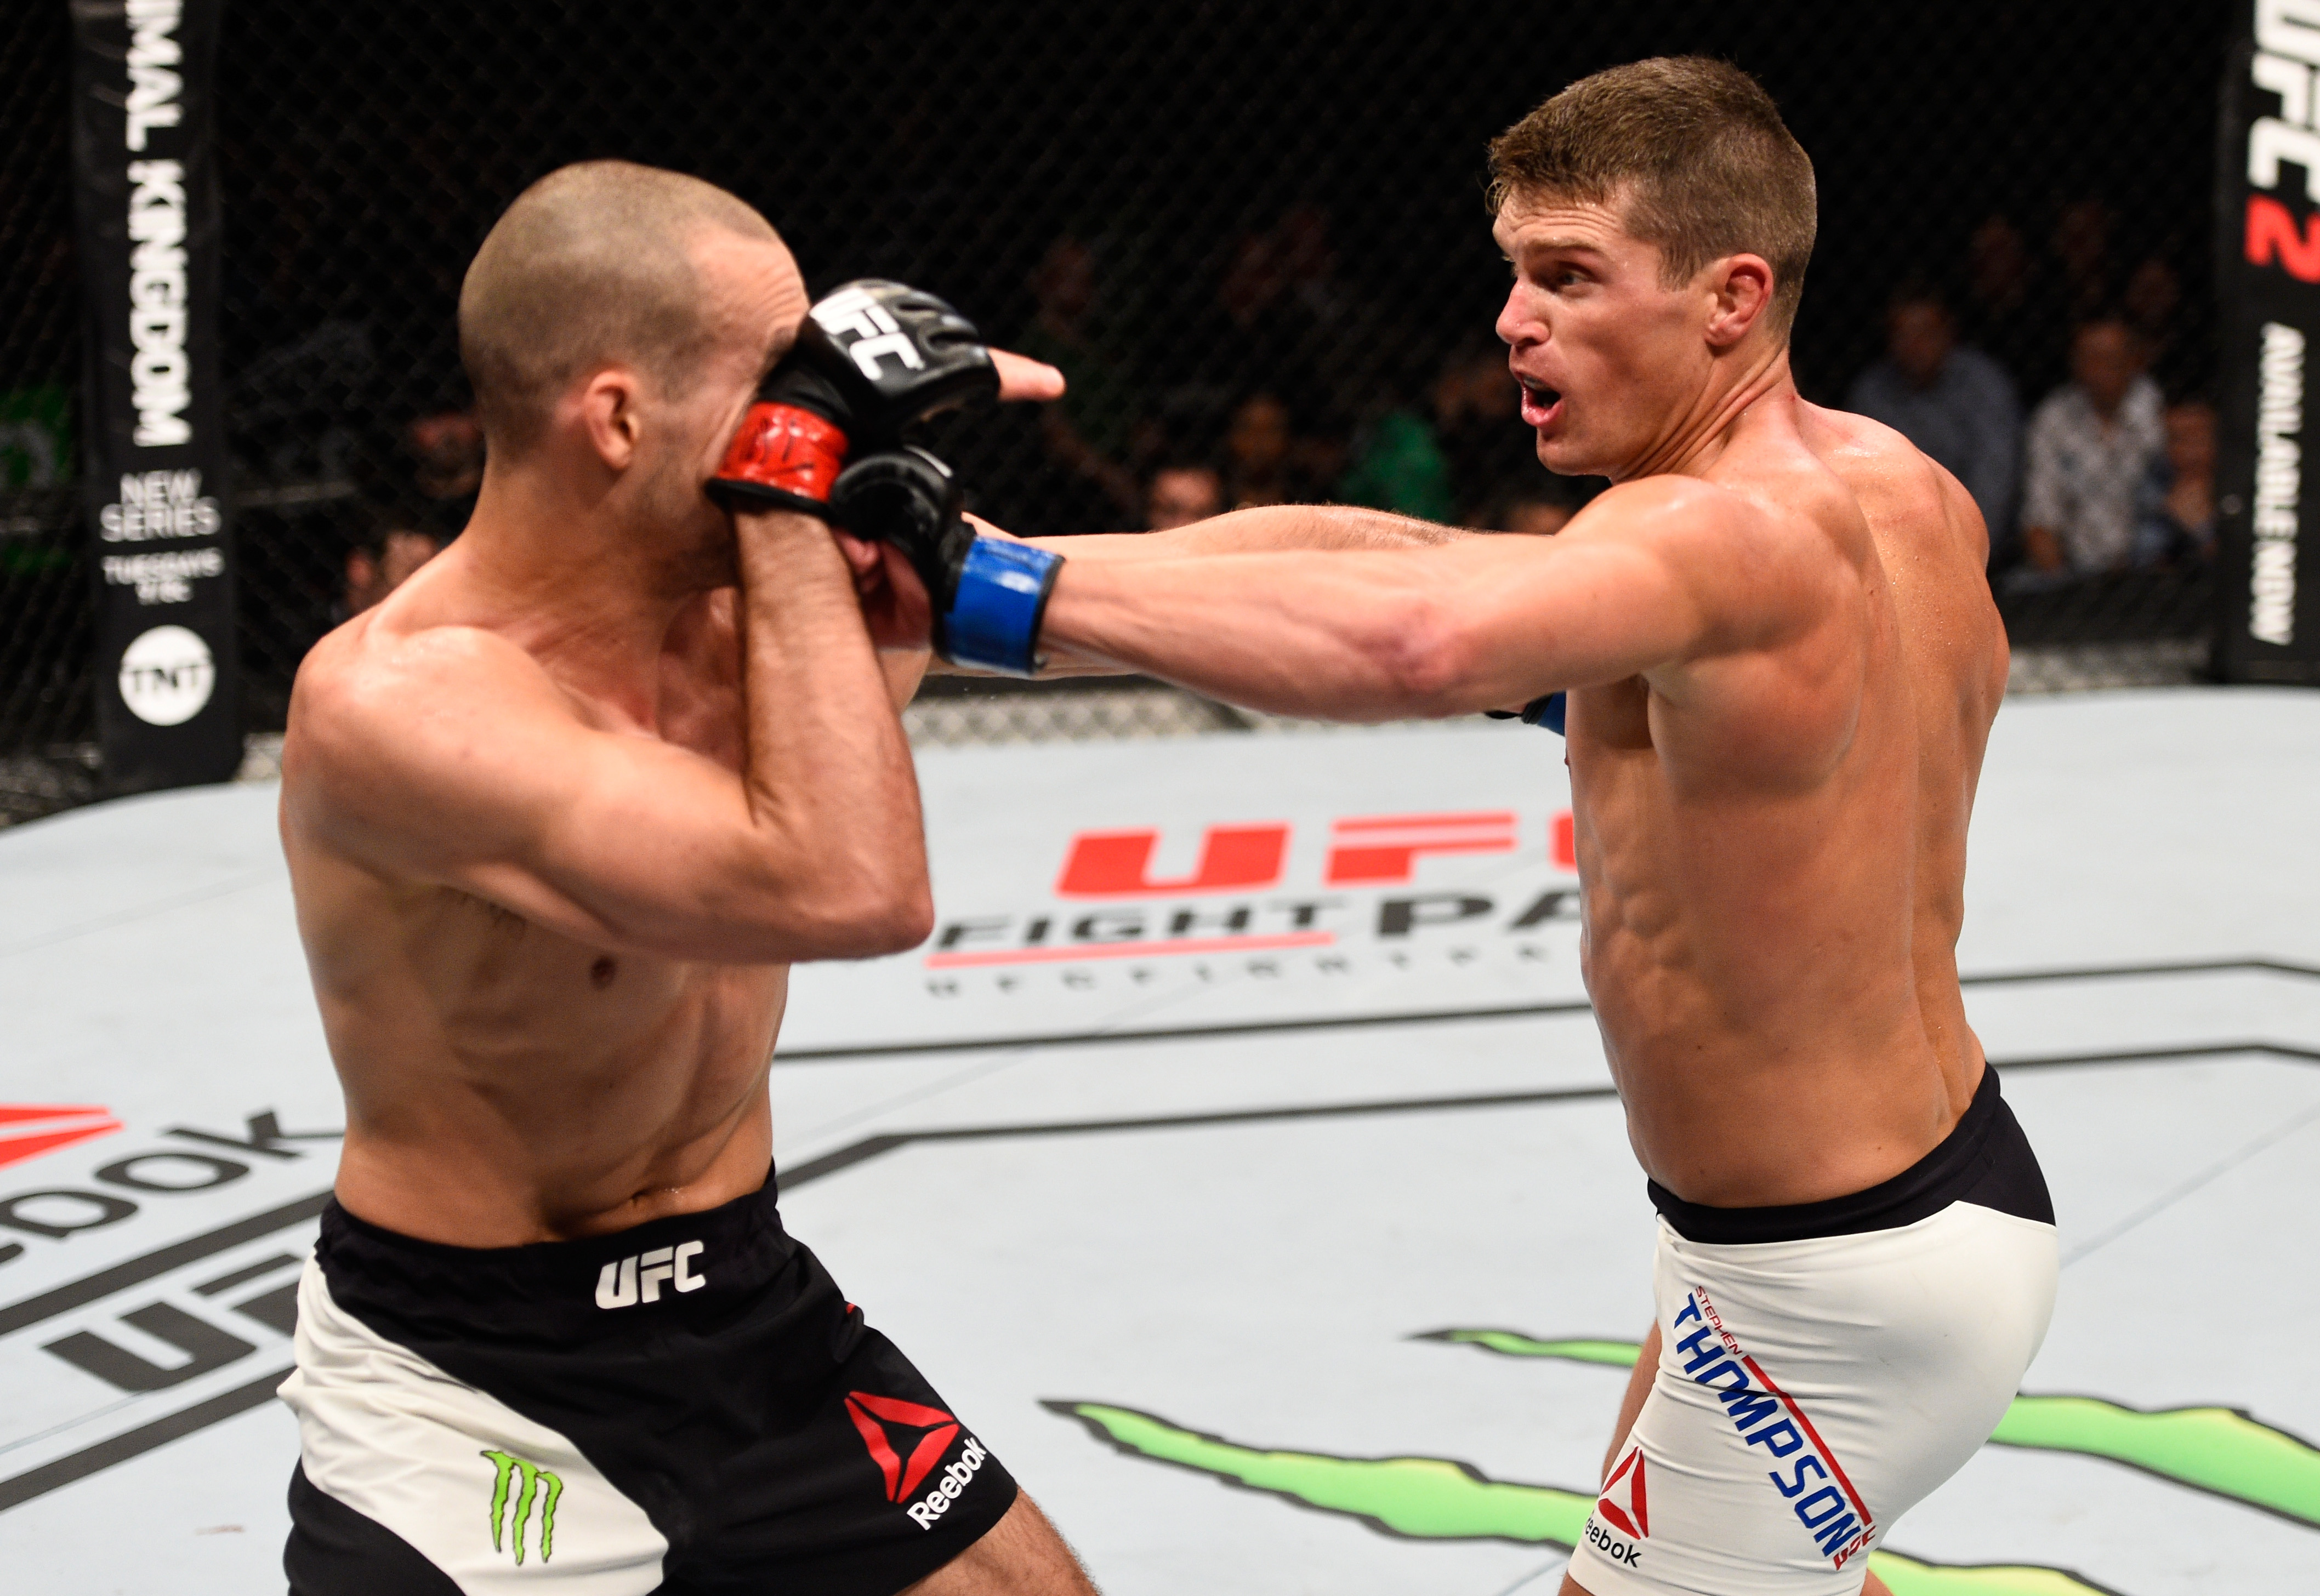 OTTAWA, ON - JUNE 18: (R-L) Stephen Thompson of the United States punches Rory MacDonald of Canada in their welterweight bout during the UFC Fight Night event inside the TD Place Arena on June 18, 2016 in Ottawa, Ontario, Canada. (Photo by Jeff Bottari/Zuffa LLC/Zuffa LLC via Getty Images)